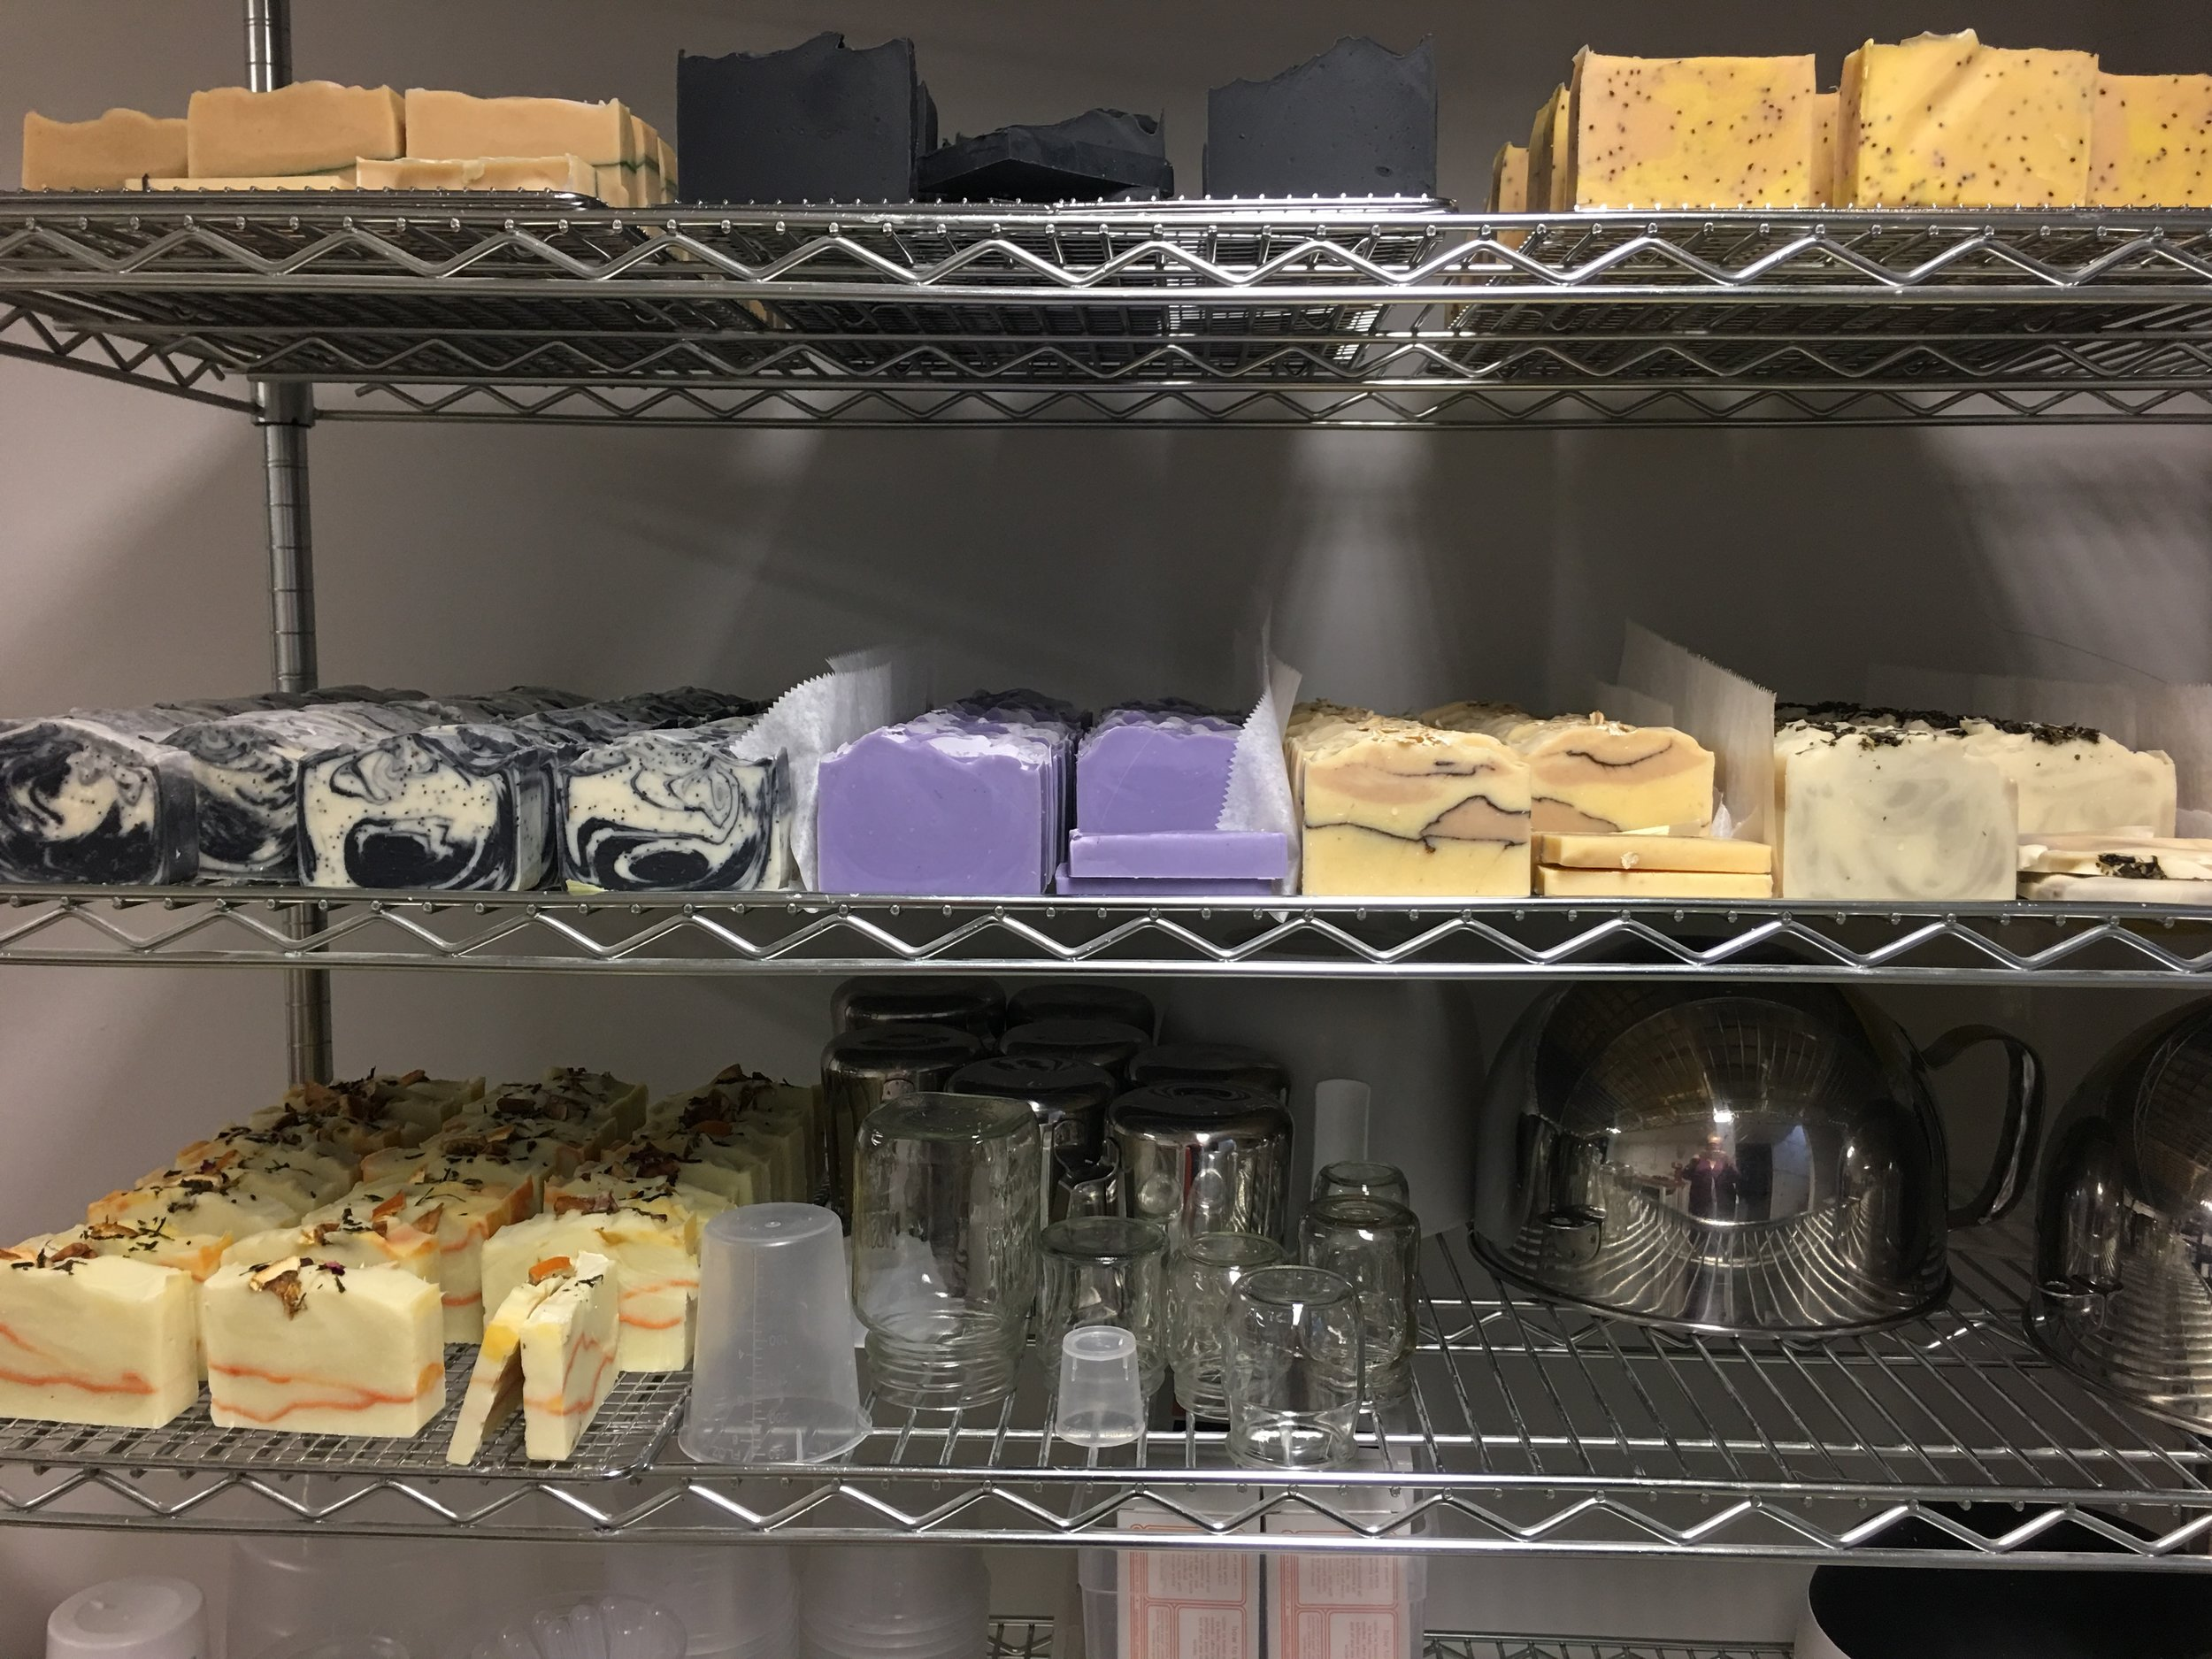 The curing rack.